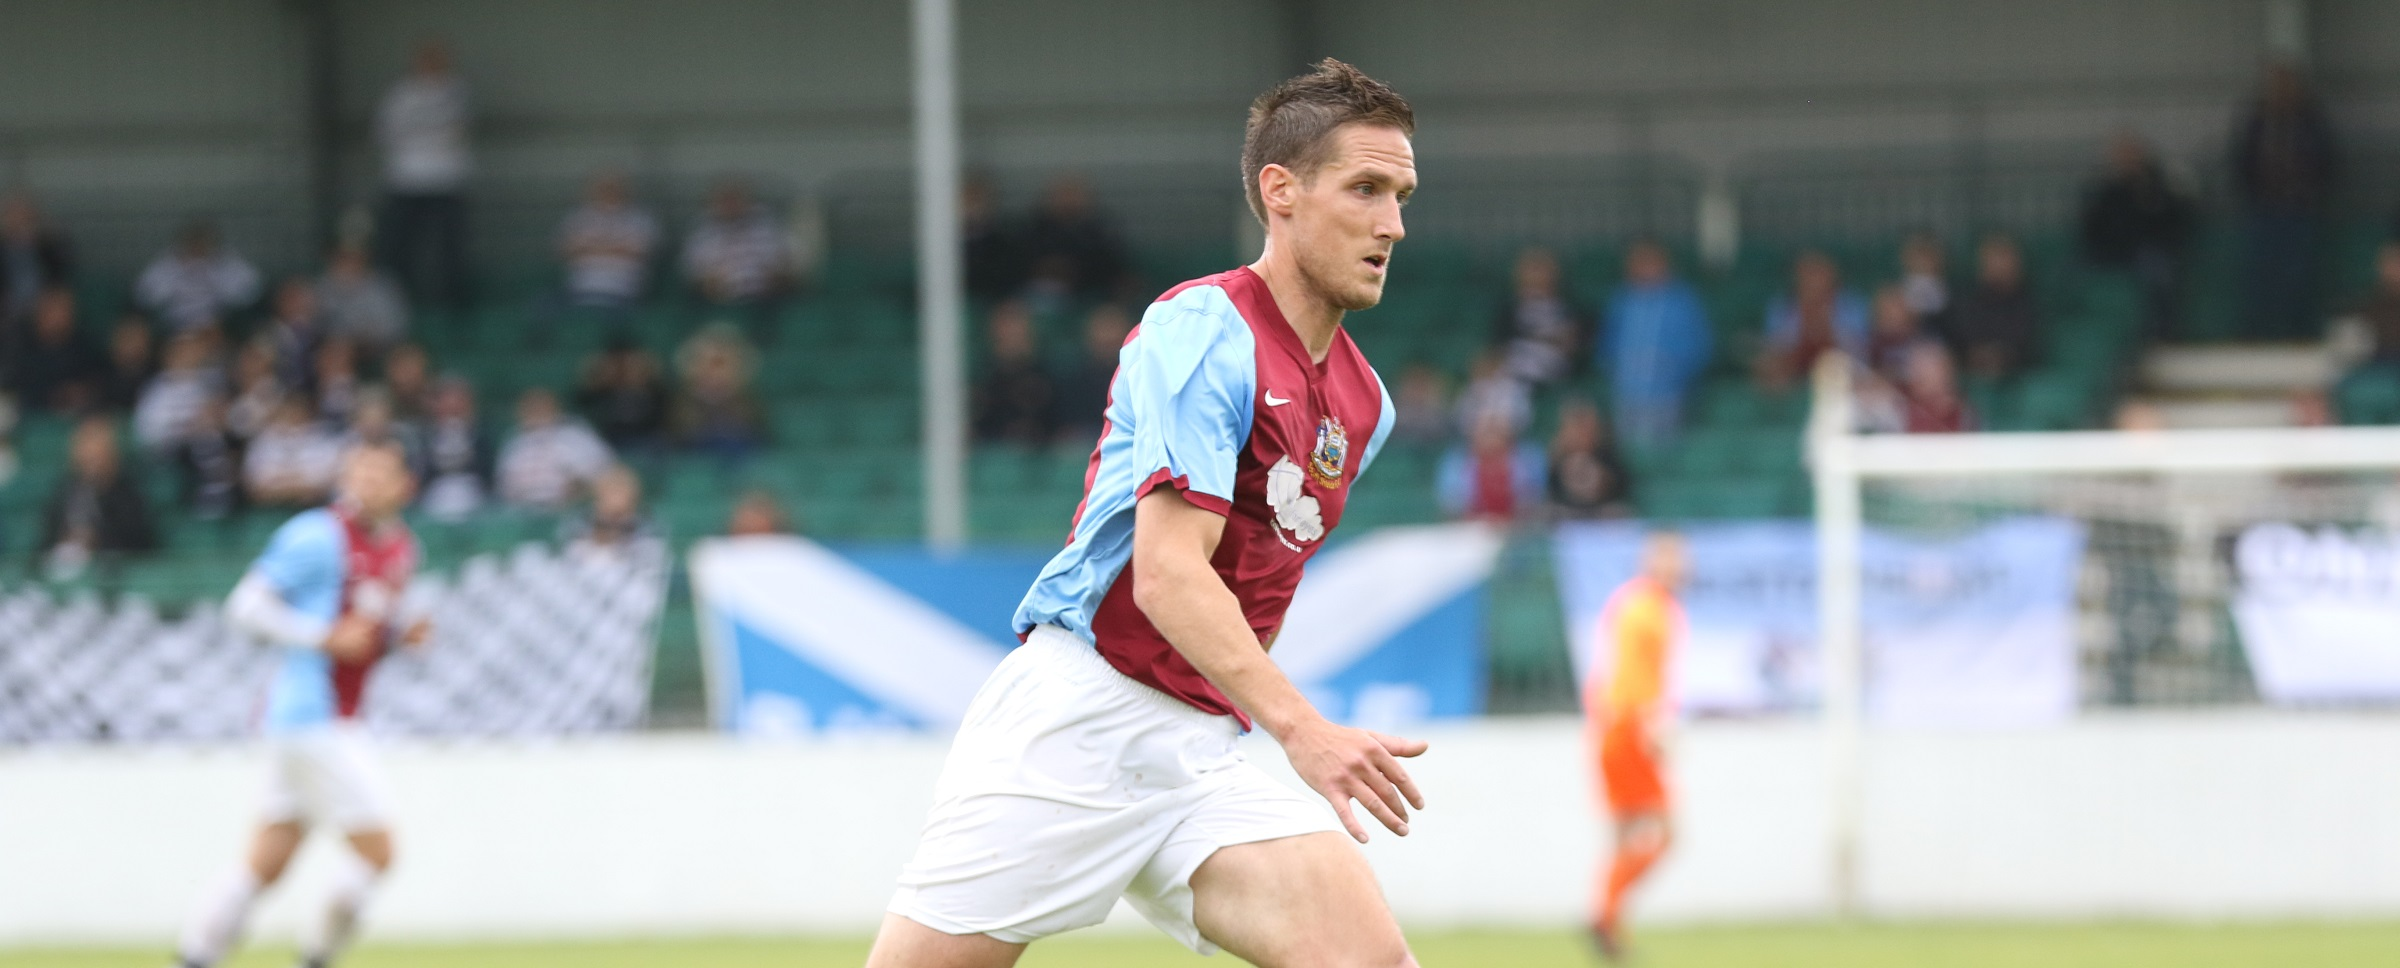 Bedlington Terriers 2-2 South Shields: Shaw off mark in draw